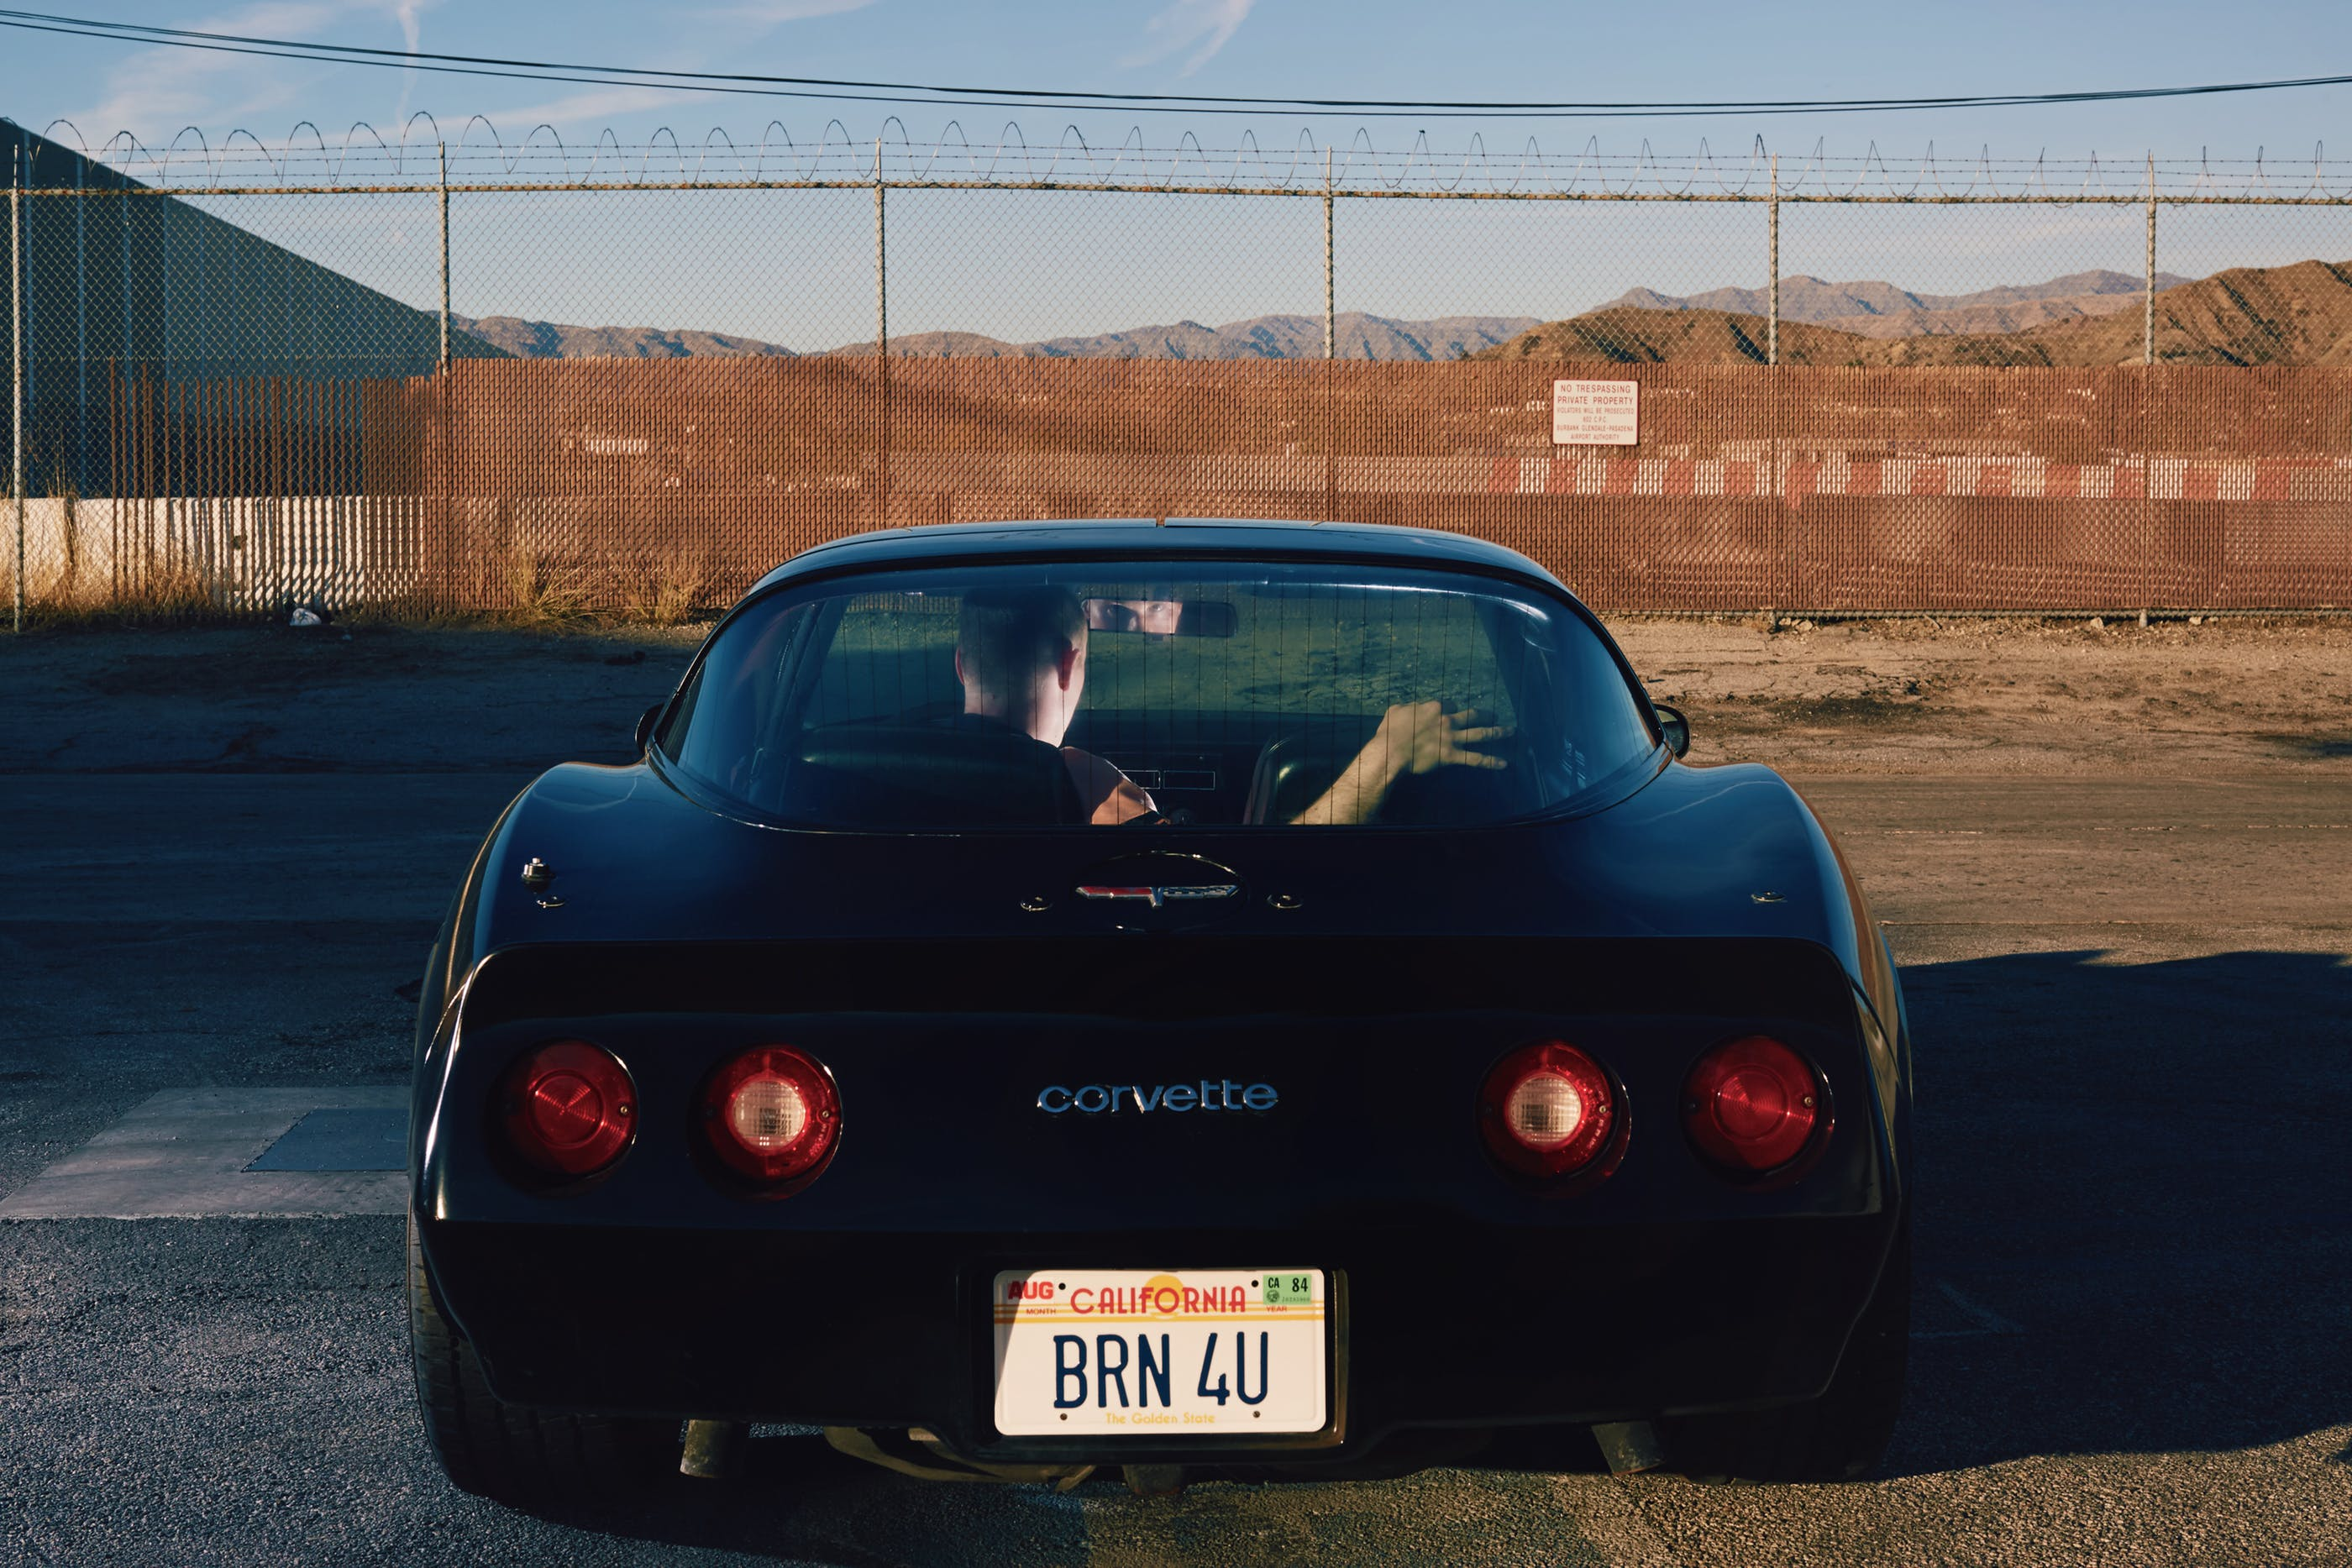 David Sconce Corvette with I Burn 4 U tag